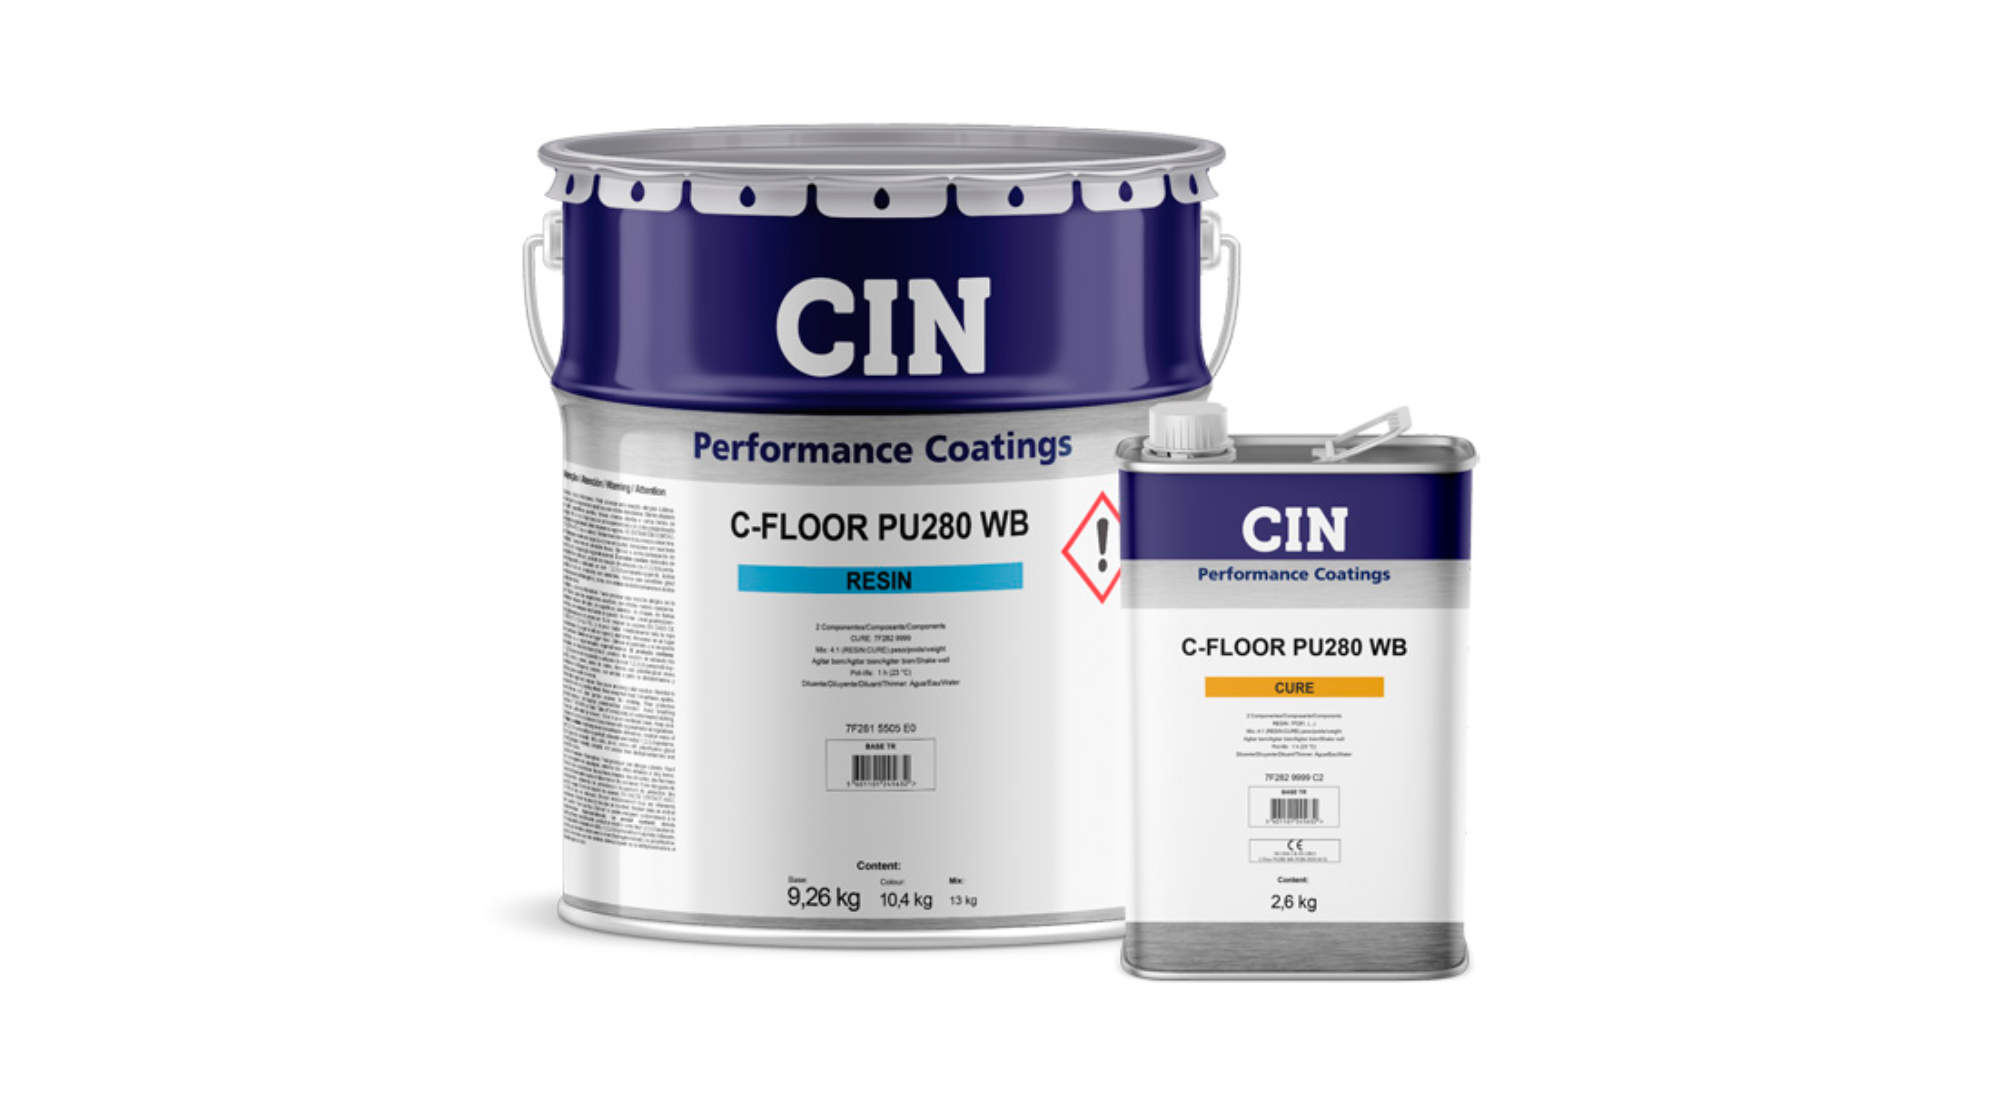 CIN launches C-FLOOR® PU280 WB to coat large areas of concrete